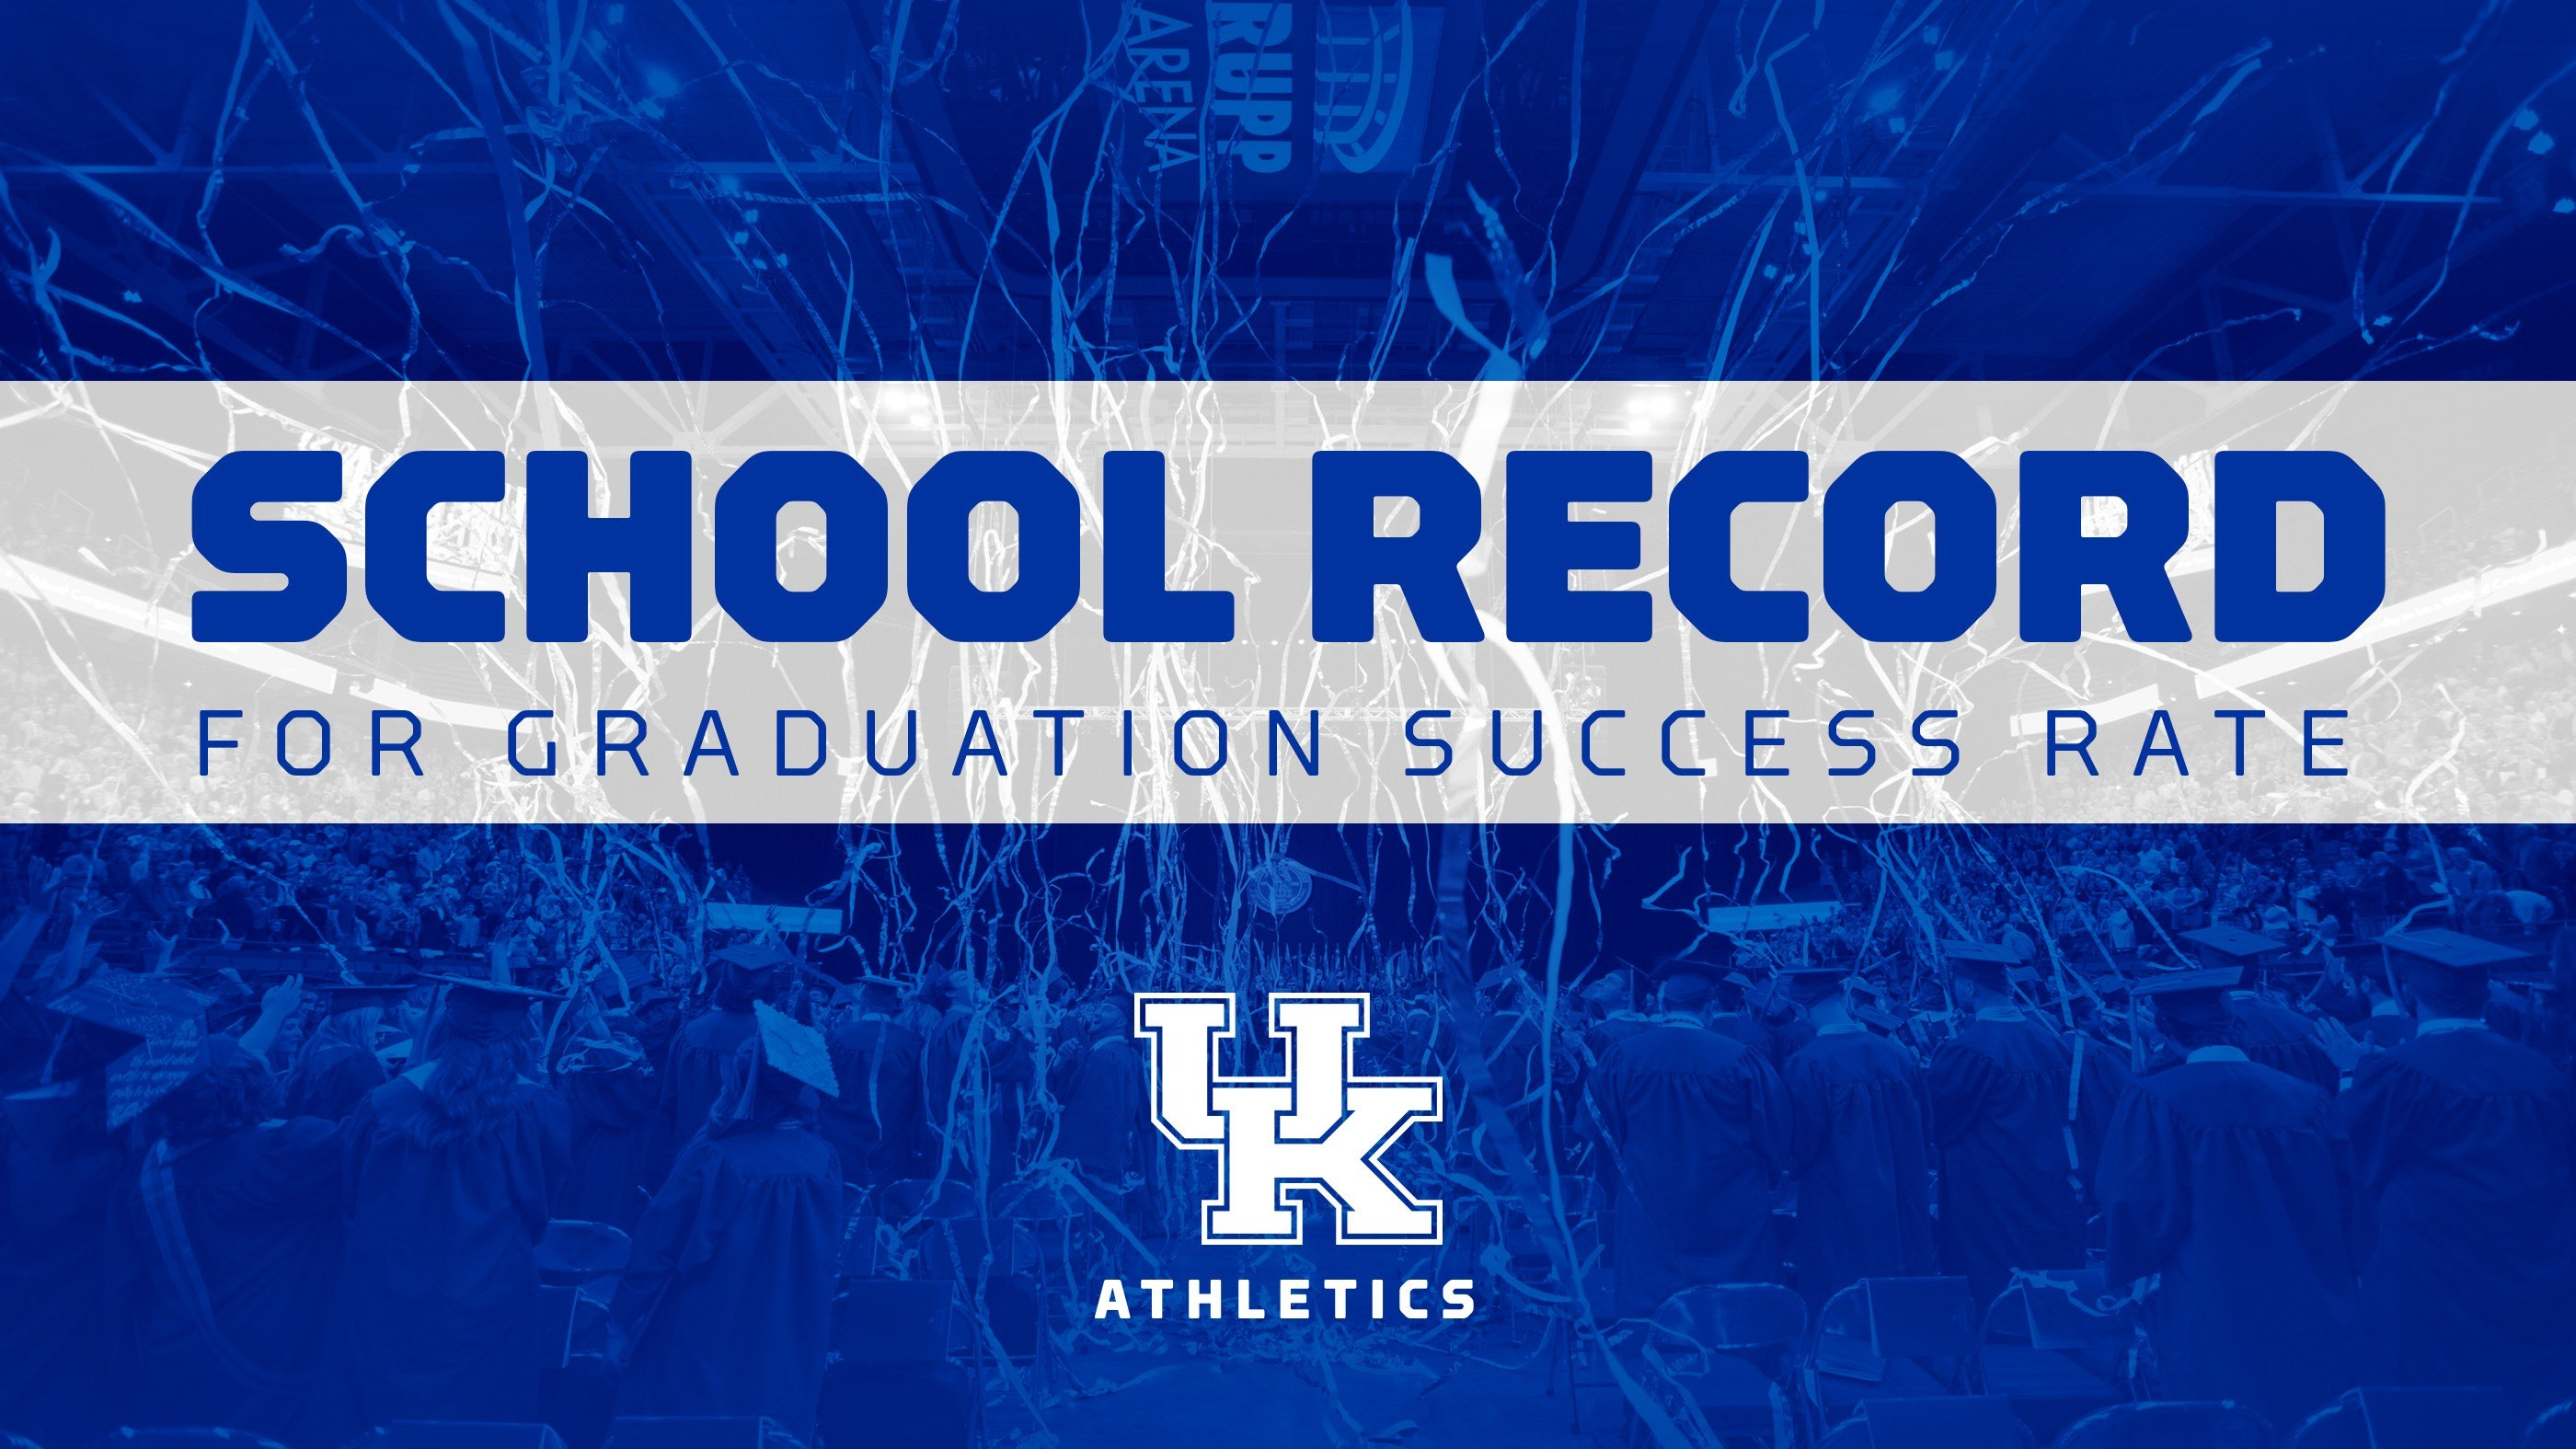 Tech Athletics records highest ever graduation success rate